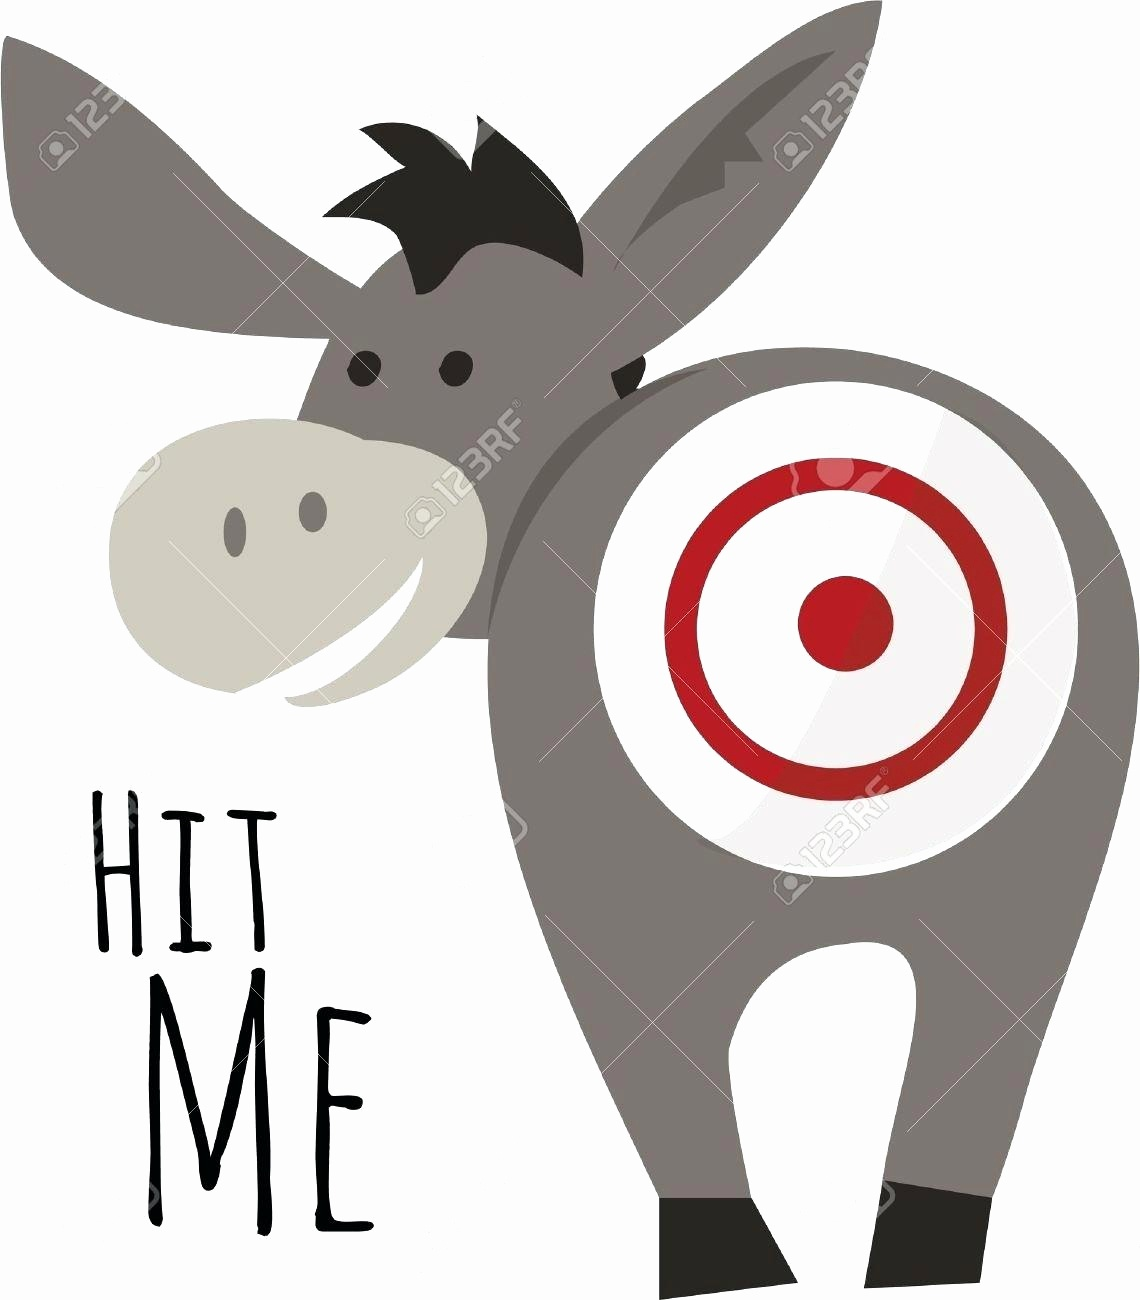 Pin The Tail On The Donkey Printable – Rtrs.online - Pin The Tail On The Donkey Printable Free